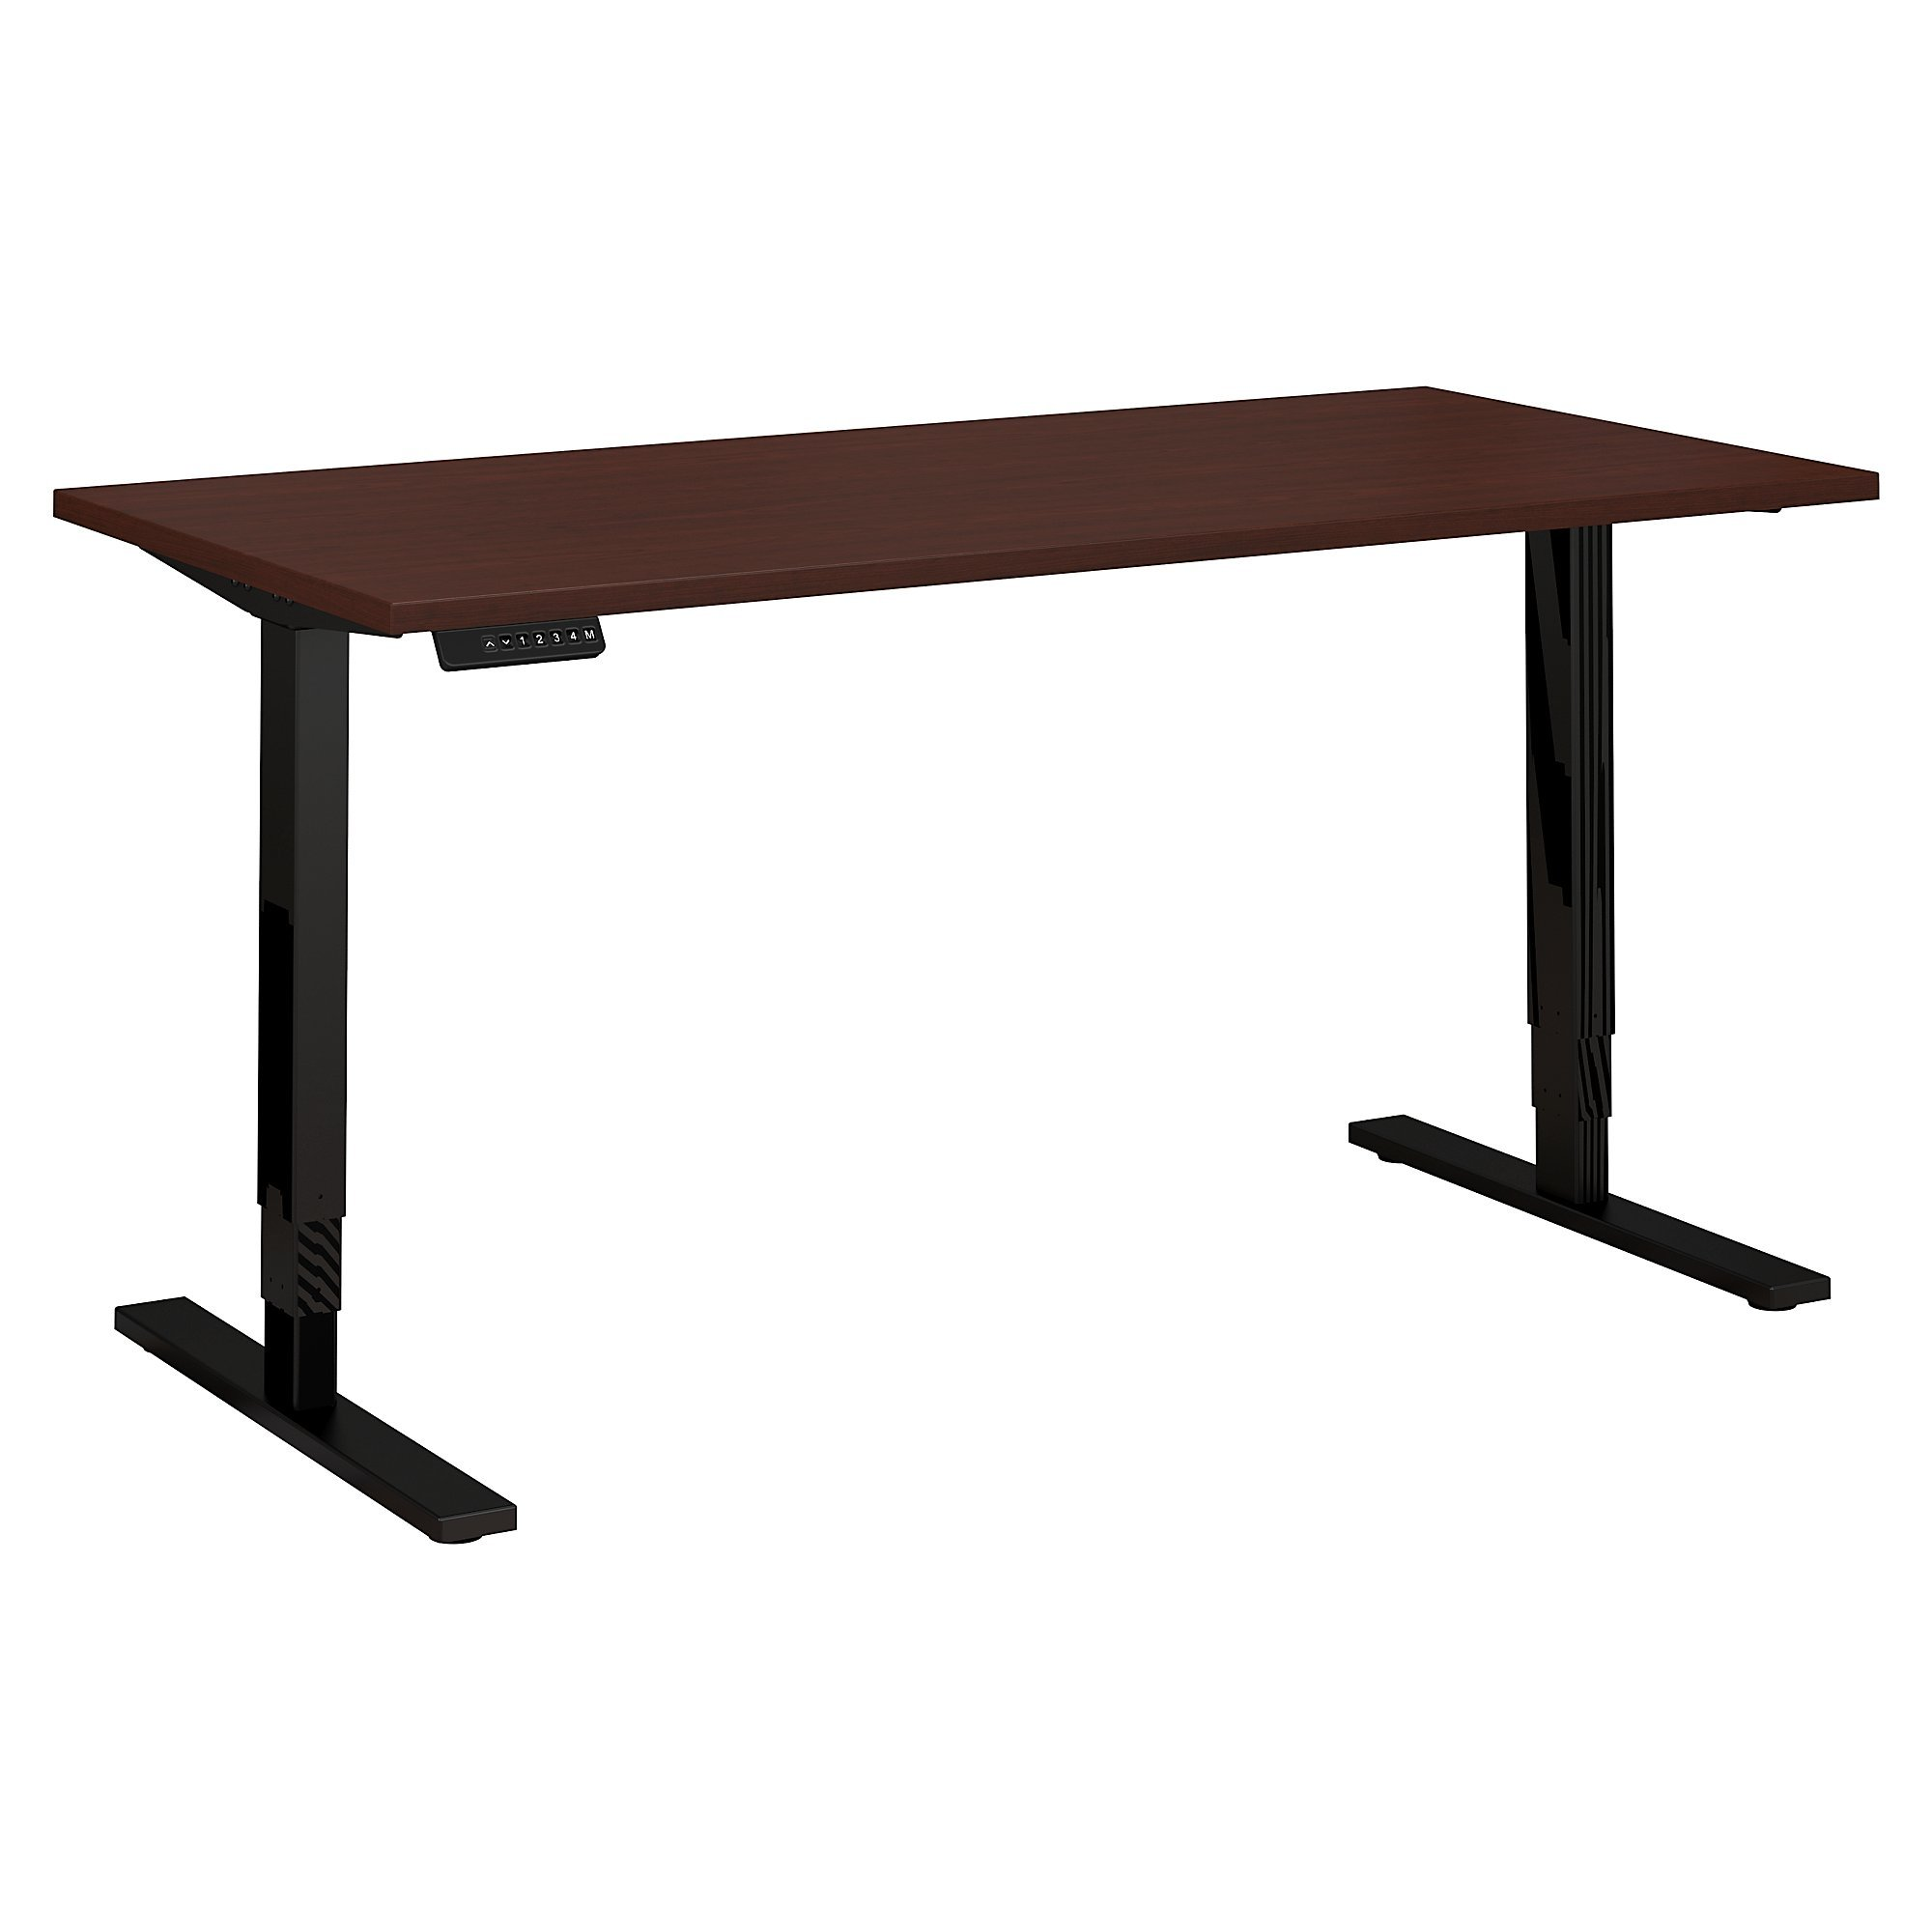 Move 80 Series by Bush Business Furniture 60W x 30D Height Adjustable Standing Desk in Harvest Cherry with Black Base